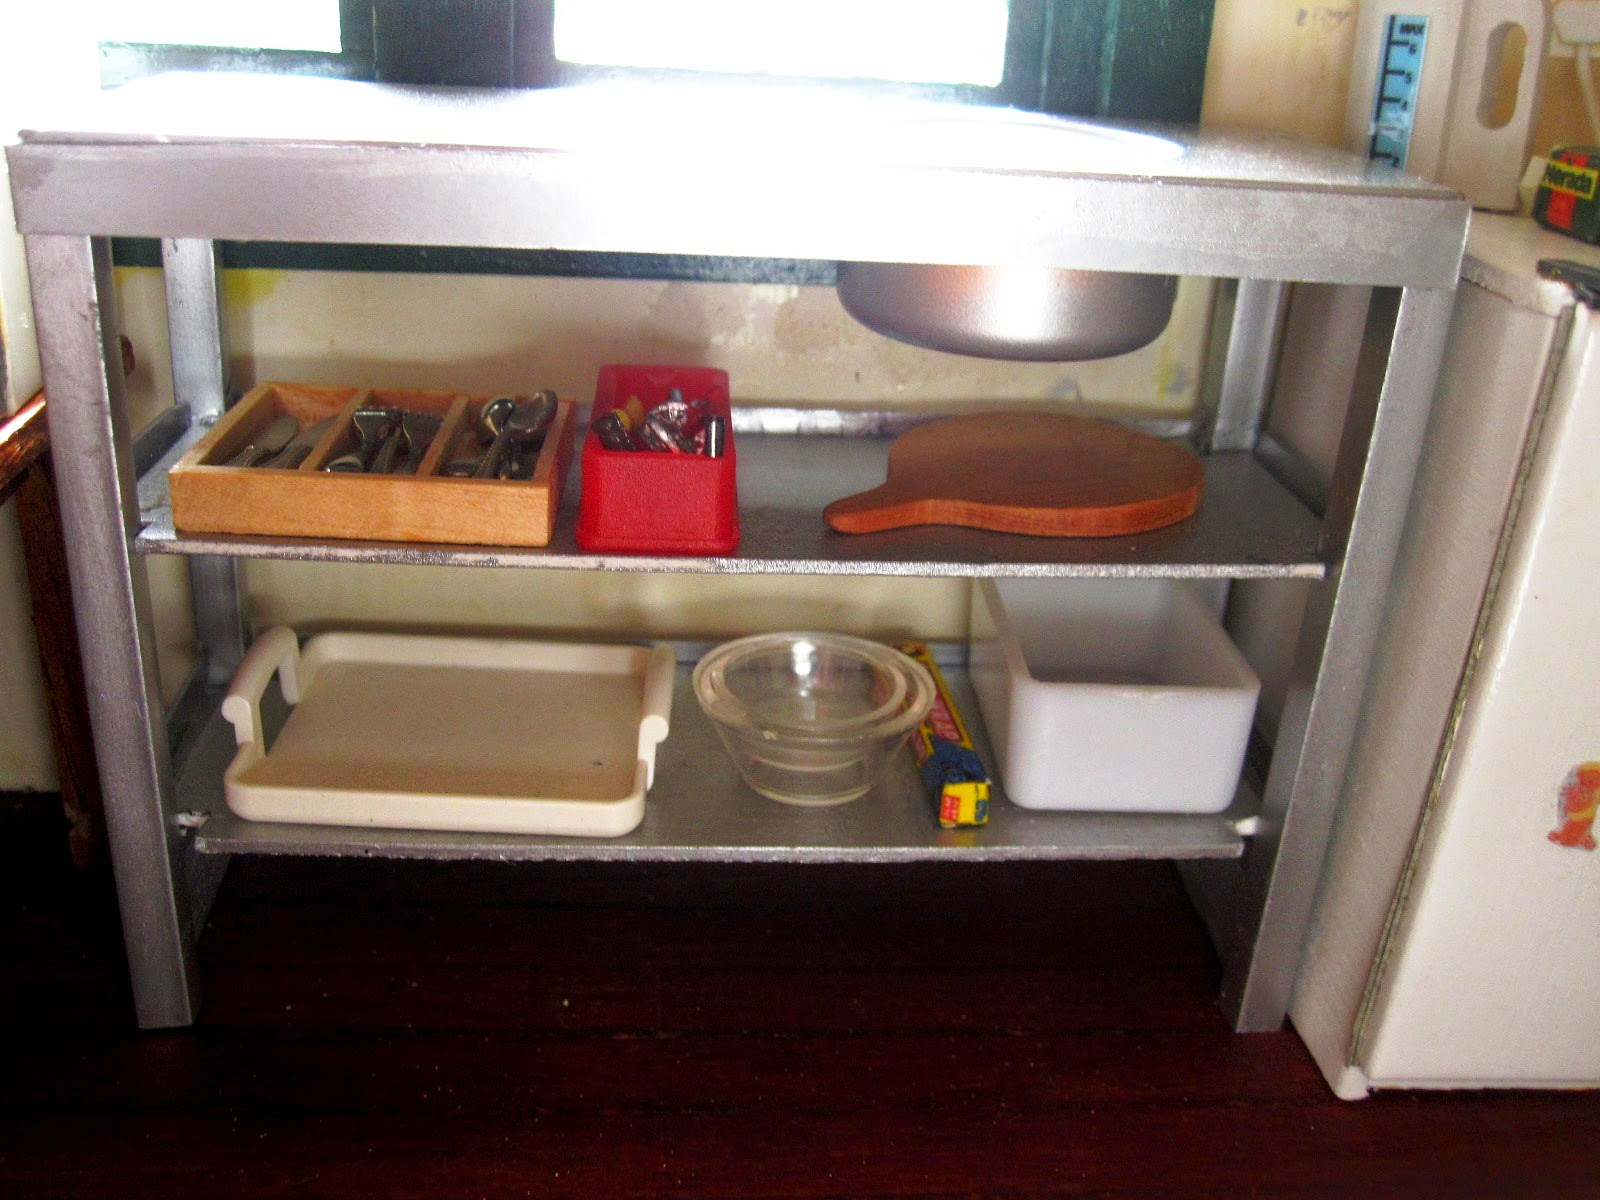 Modern miniature metal kitchen bench unit displaying a selection of kitchenware underneath.